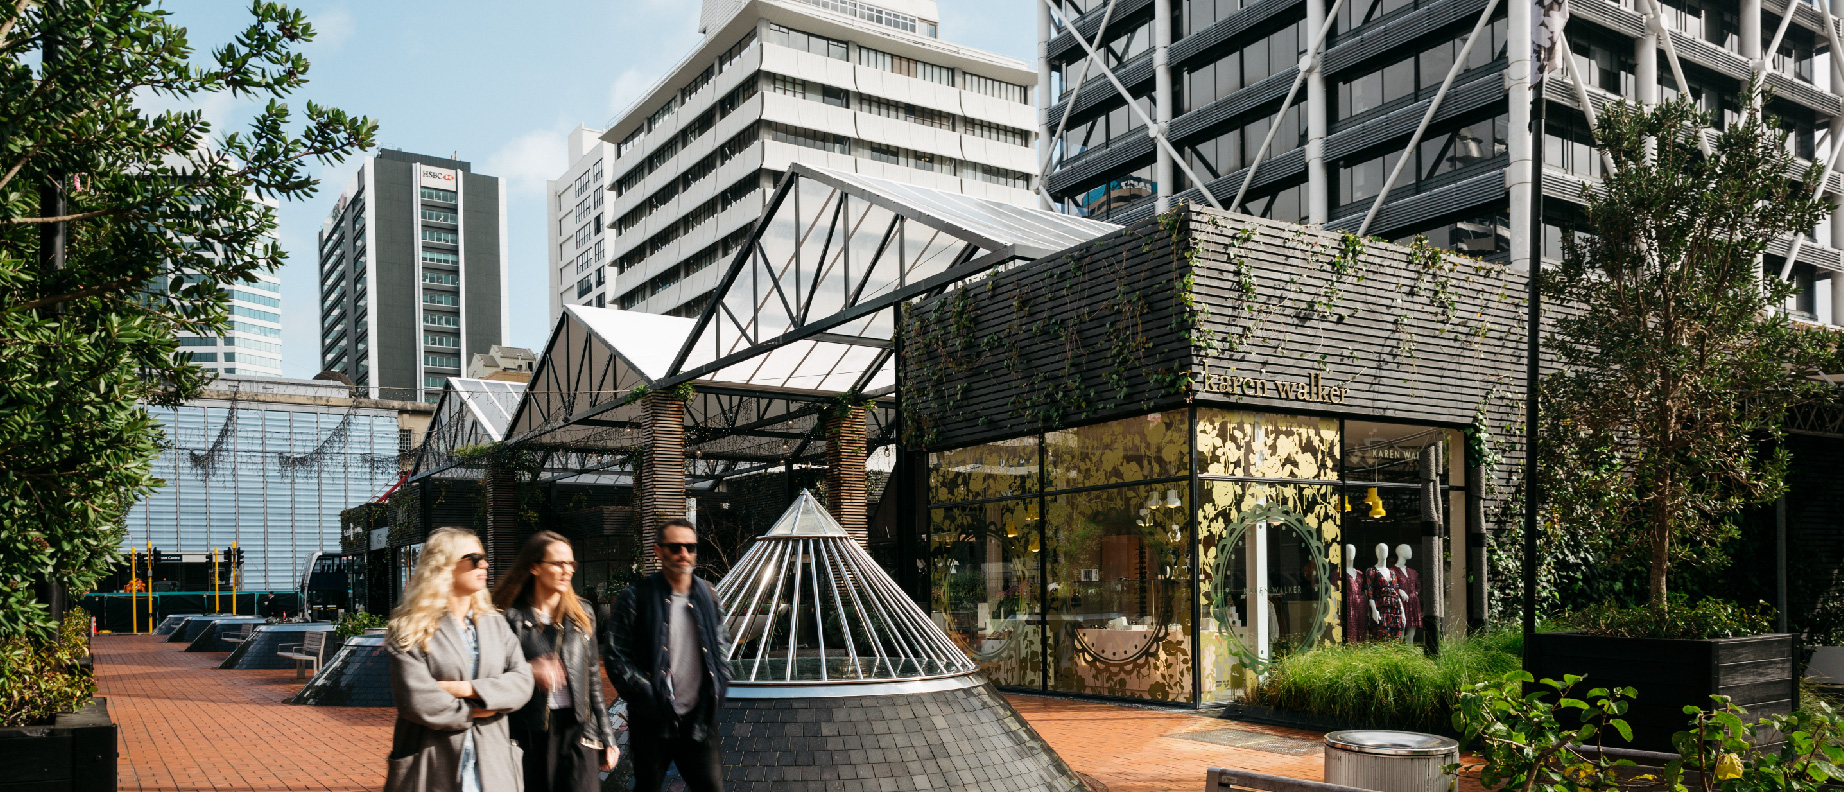 Photograph showing public space improvements near Britomart Train Station.